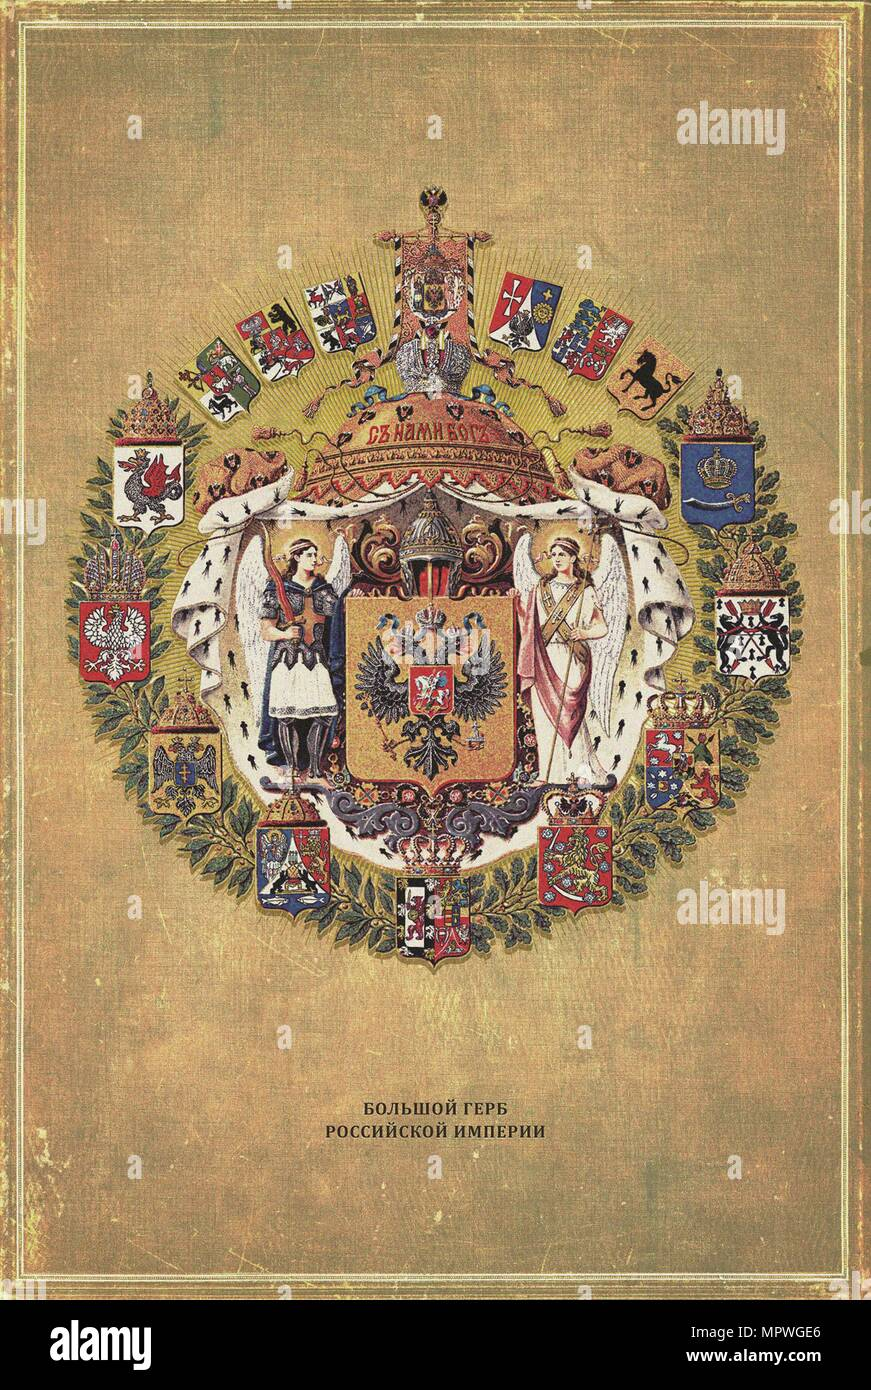 Greater coat of arms of the Russian Empire, 1882. - Stock Image